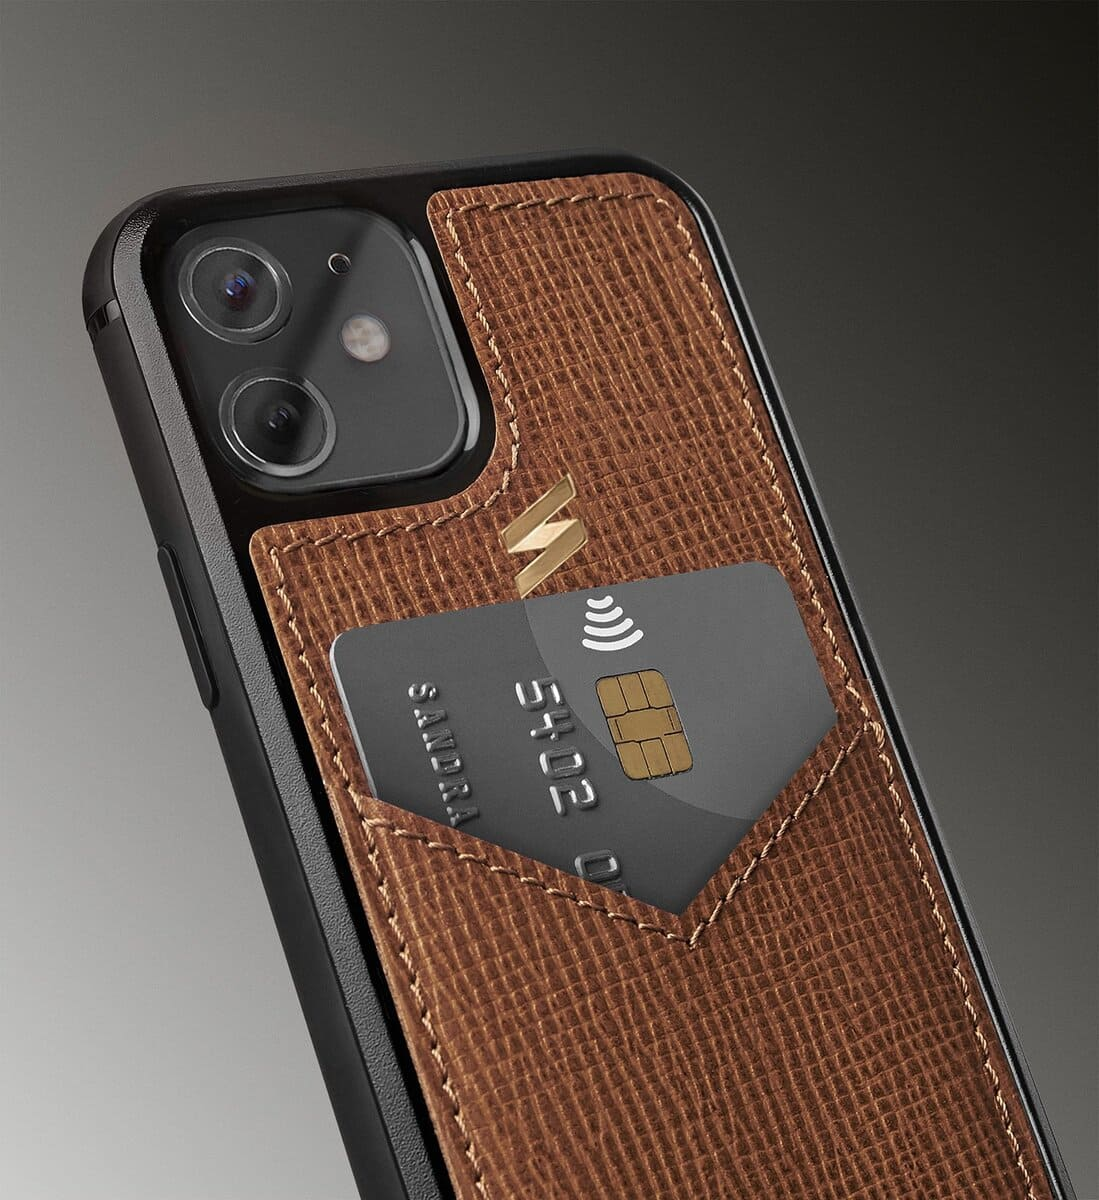 Iphone leather case with a compartment for credit cards